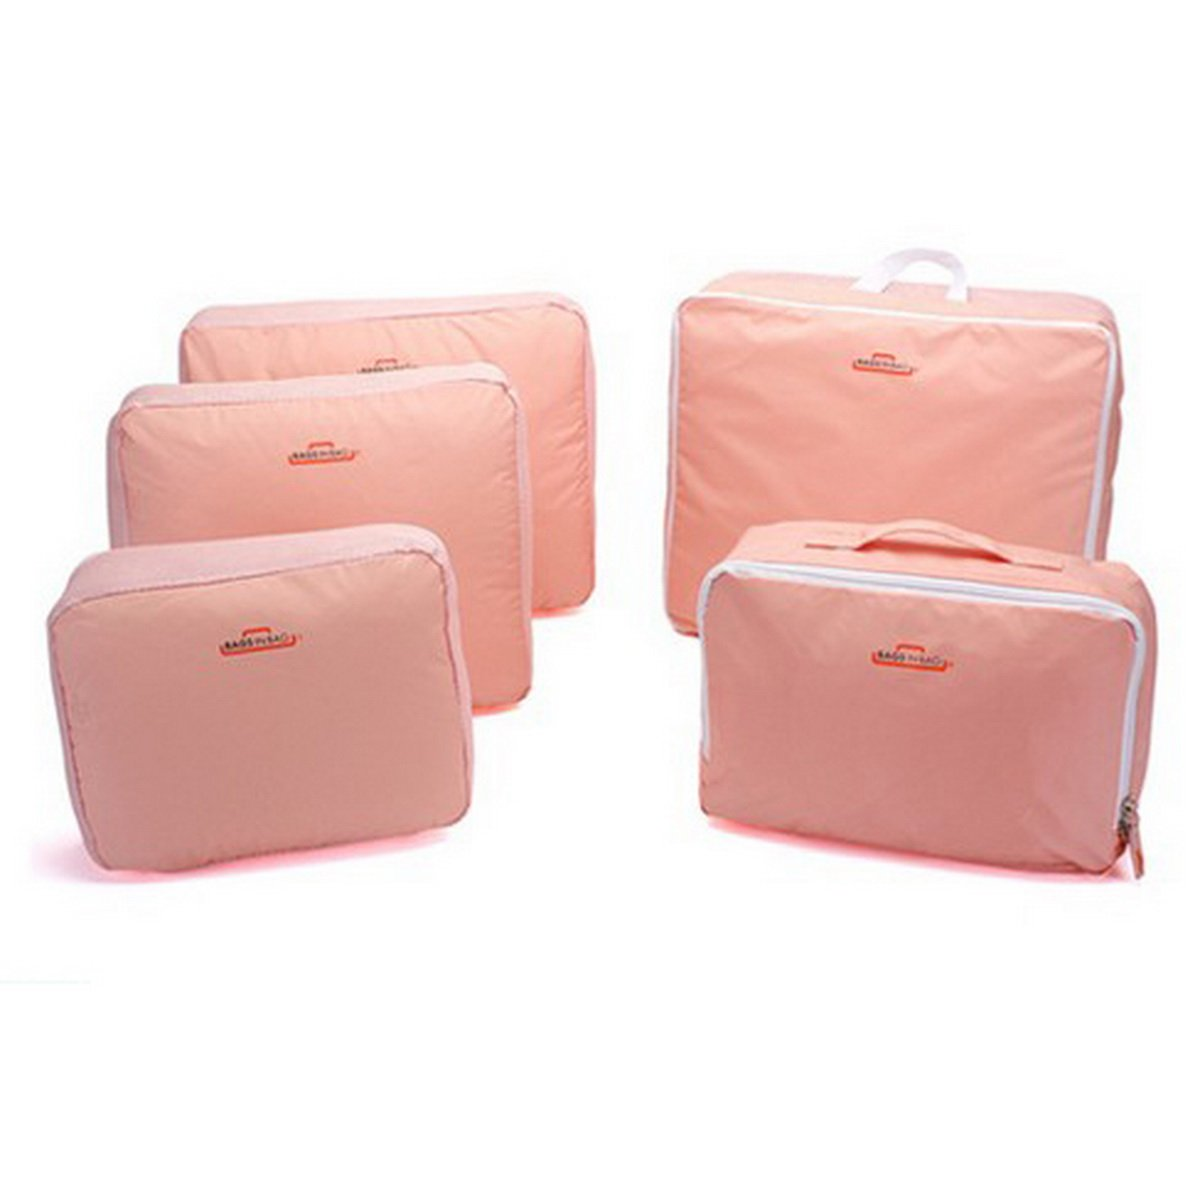 DEHANG Nylon 5pcs/Set Portable Dustproof Packing Cube Underwear Storage Bag Organizer Clothes Accessories Travel Luggage Kit Pink